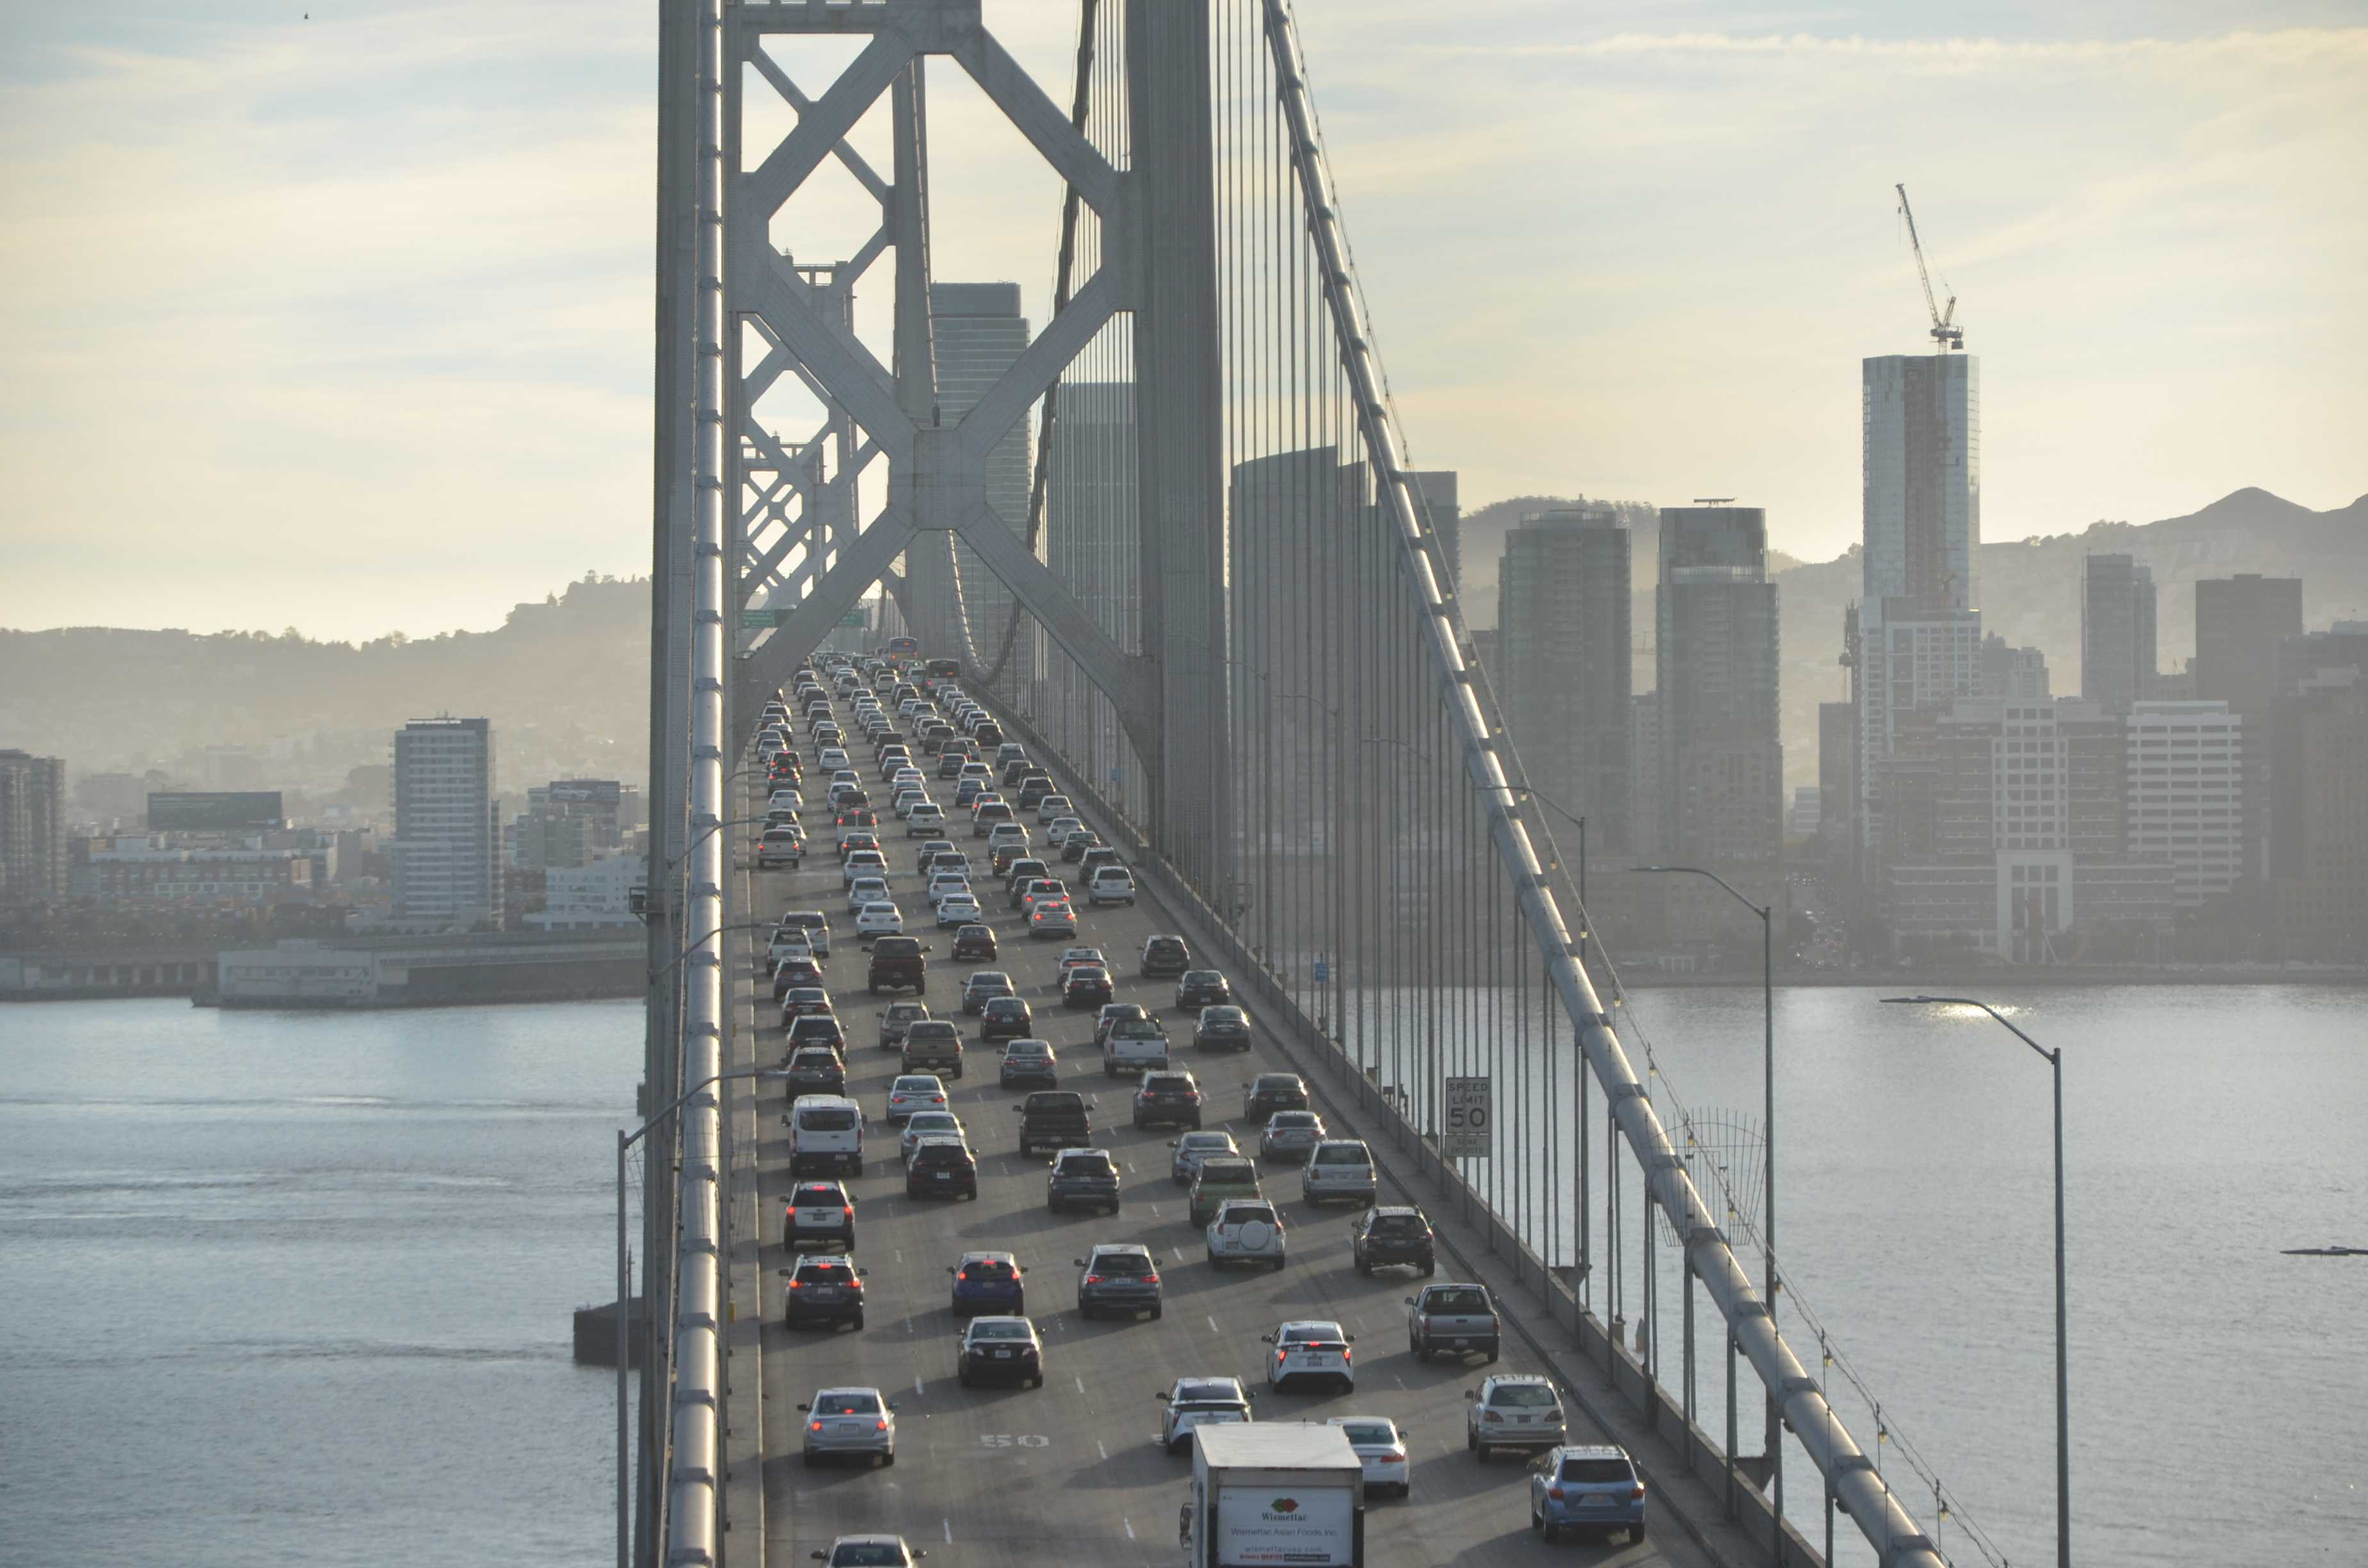 The traffic caused by commuters starts around 4 p.m. and lasts until around 6 p.m. A large contribution is due to the influx of commuters living in the city. (Nicole Newman/Golden Gate Xpress)